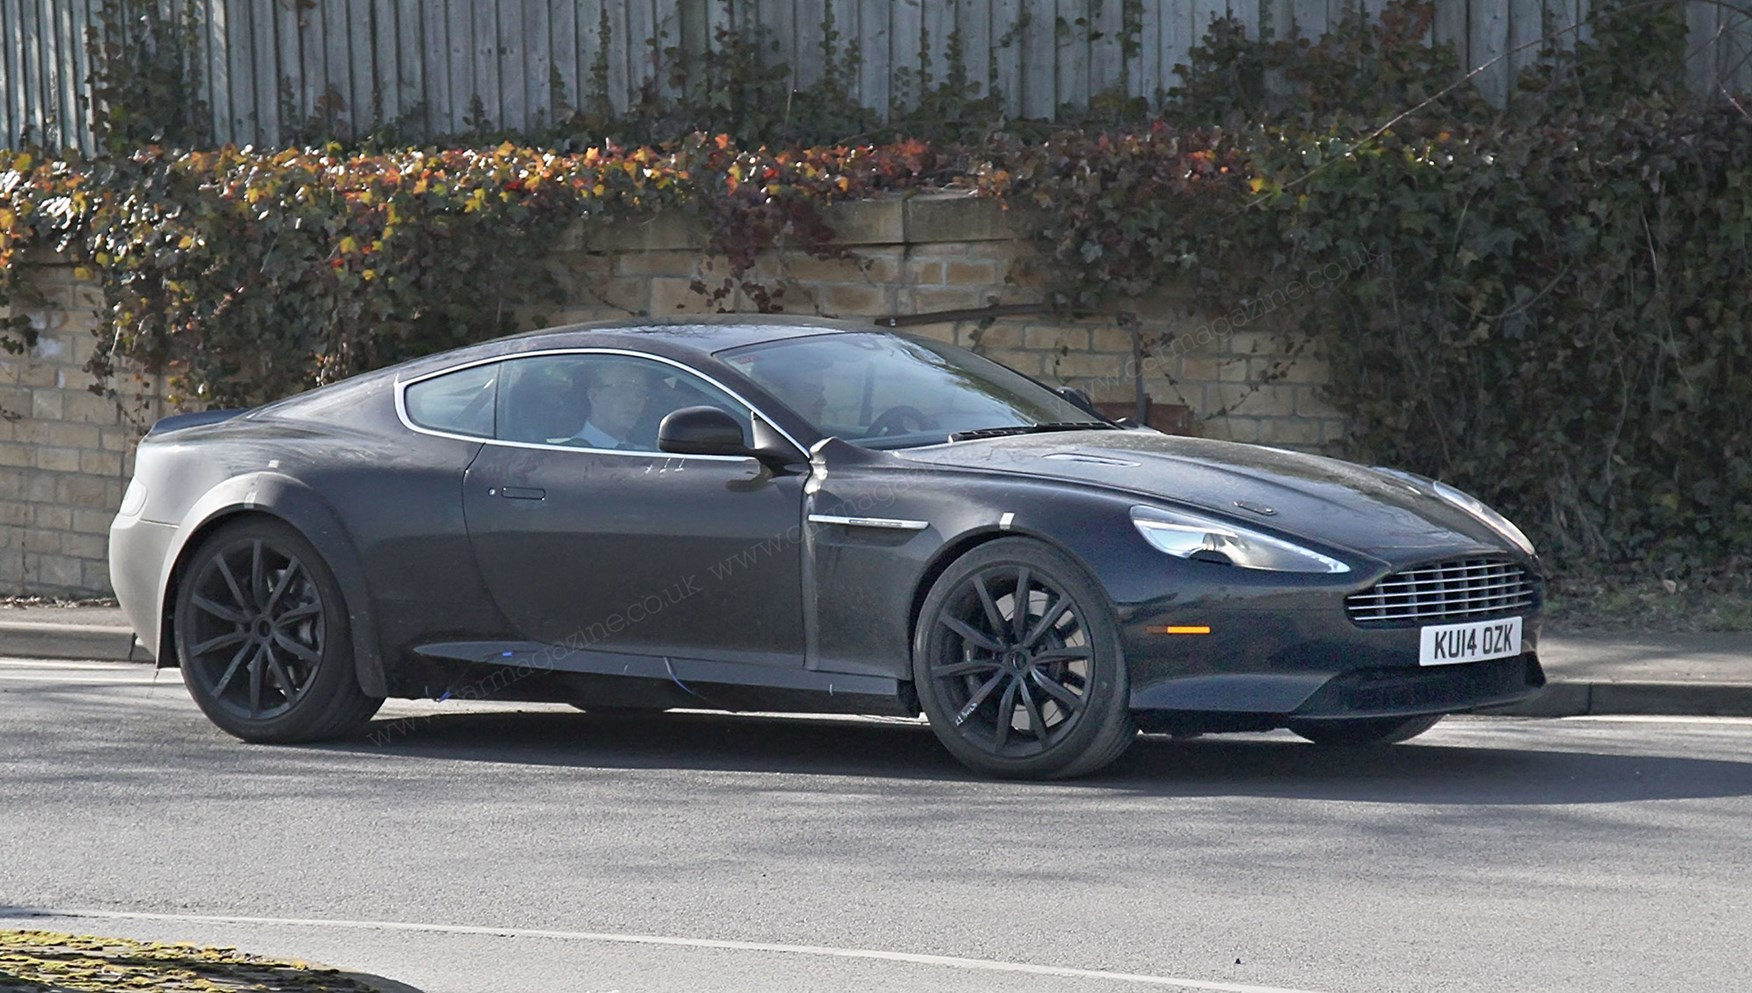 New Aston Martin Db11 Readies For 2016 Launch All The Latest On Db9